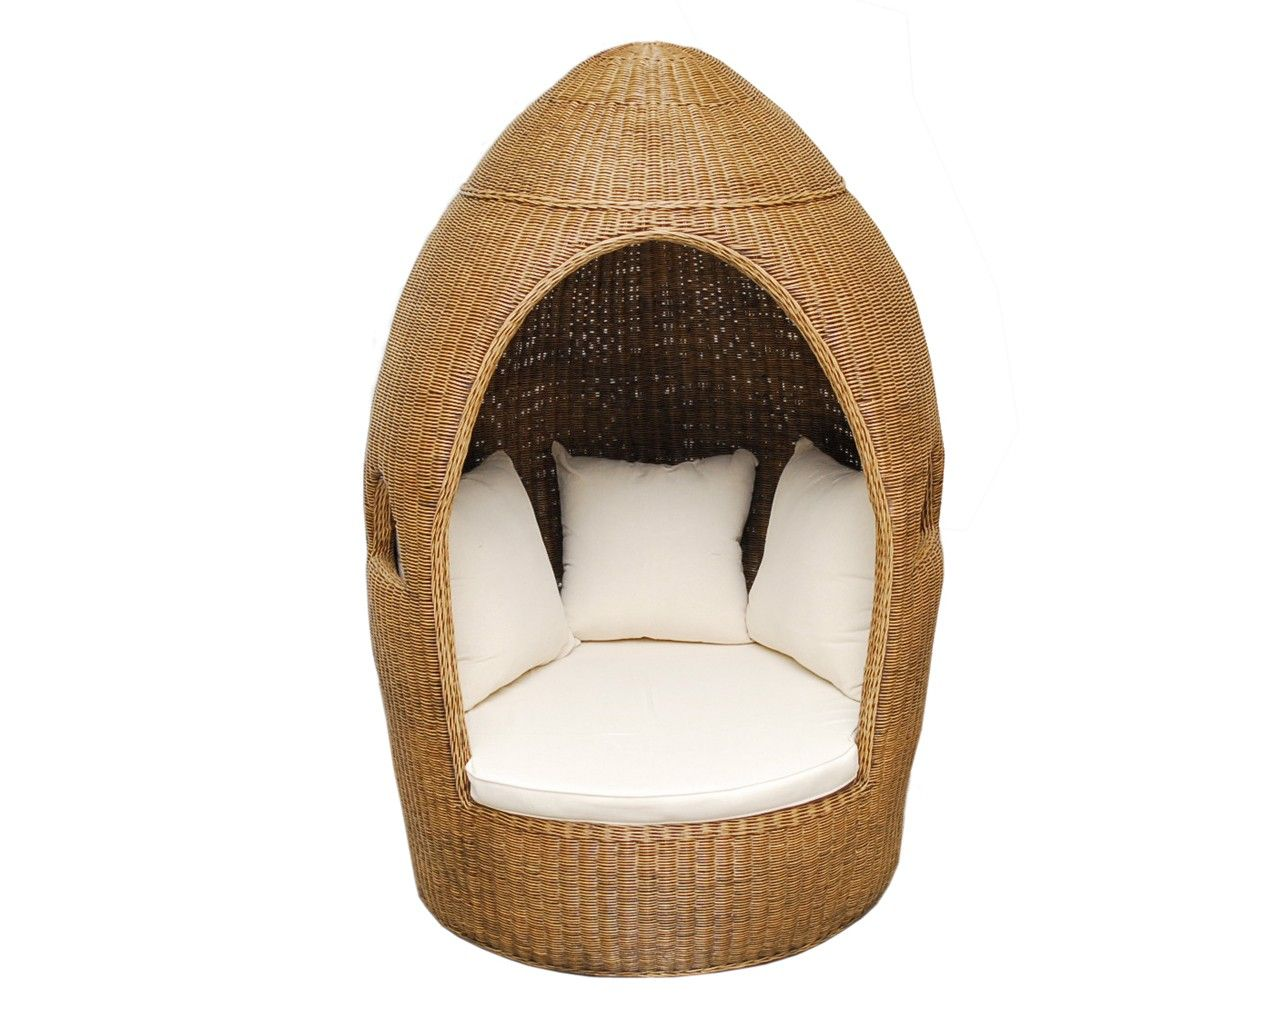 rattan egg chair revolving spare parts this impressive is hand woven from and